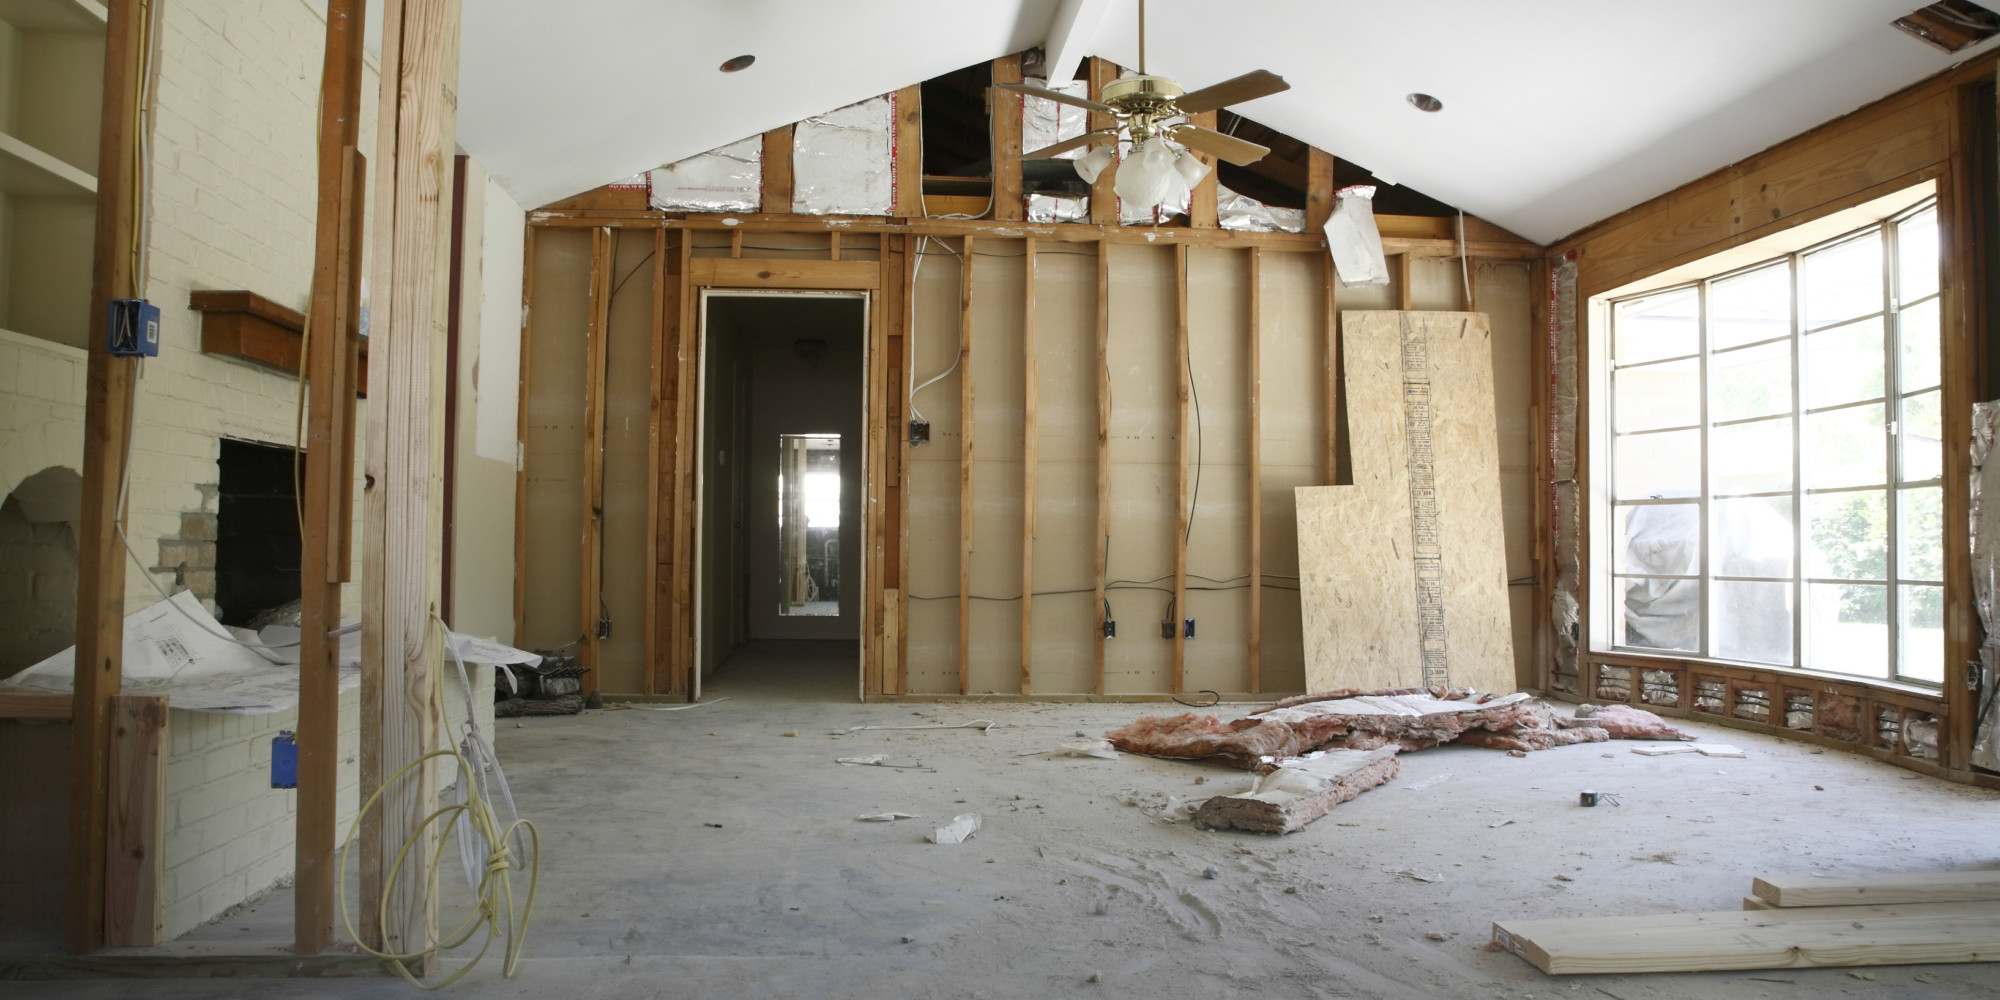 10 websites to list your home renovation business huffpost for House renovation services